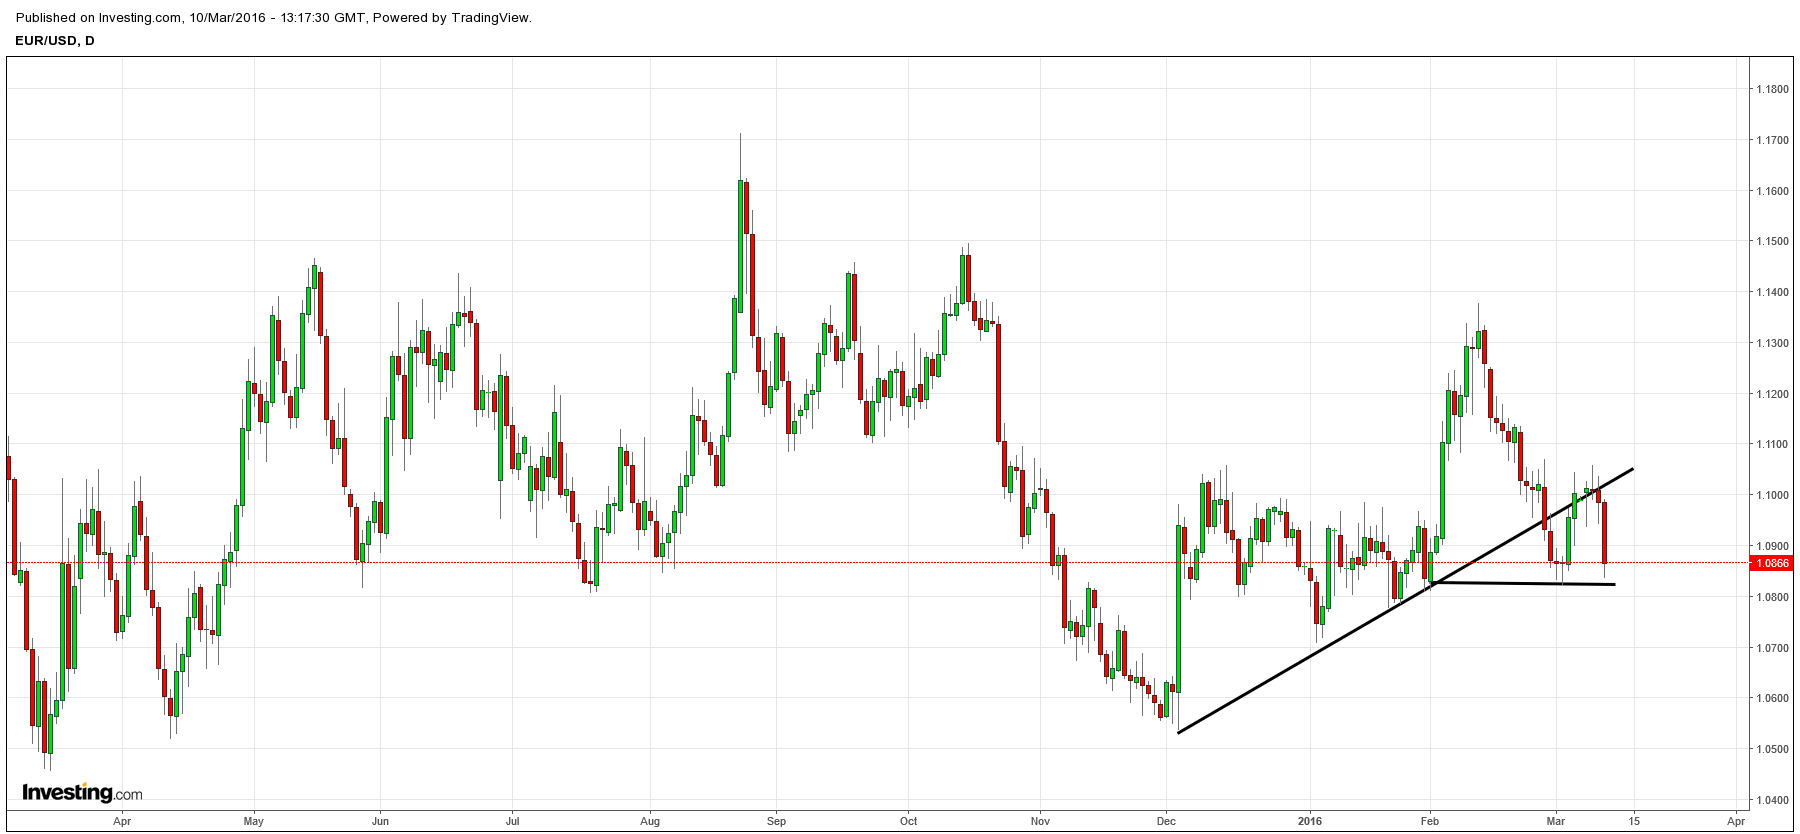 EURO pulls back to key 1.08 vs USD, but has NOT broken.. and still no meaningful damage